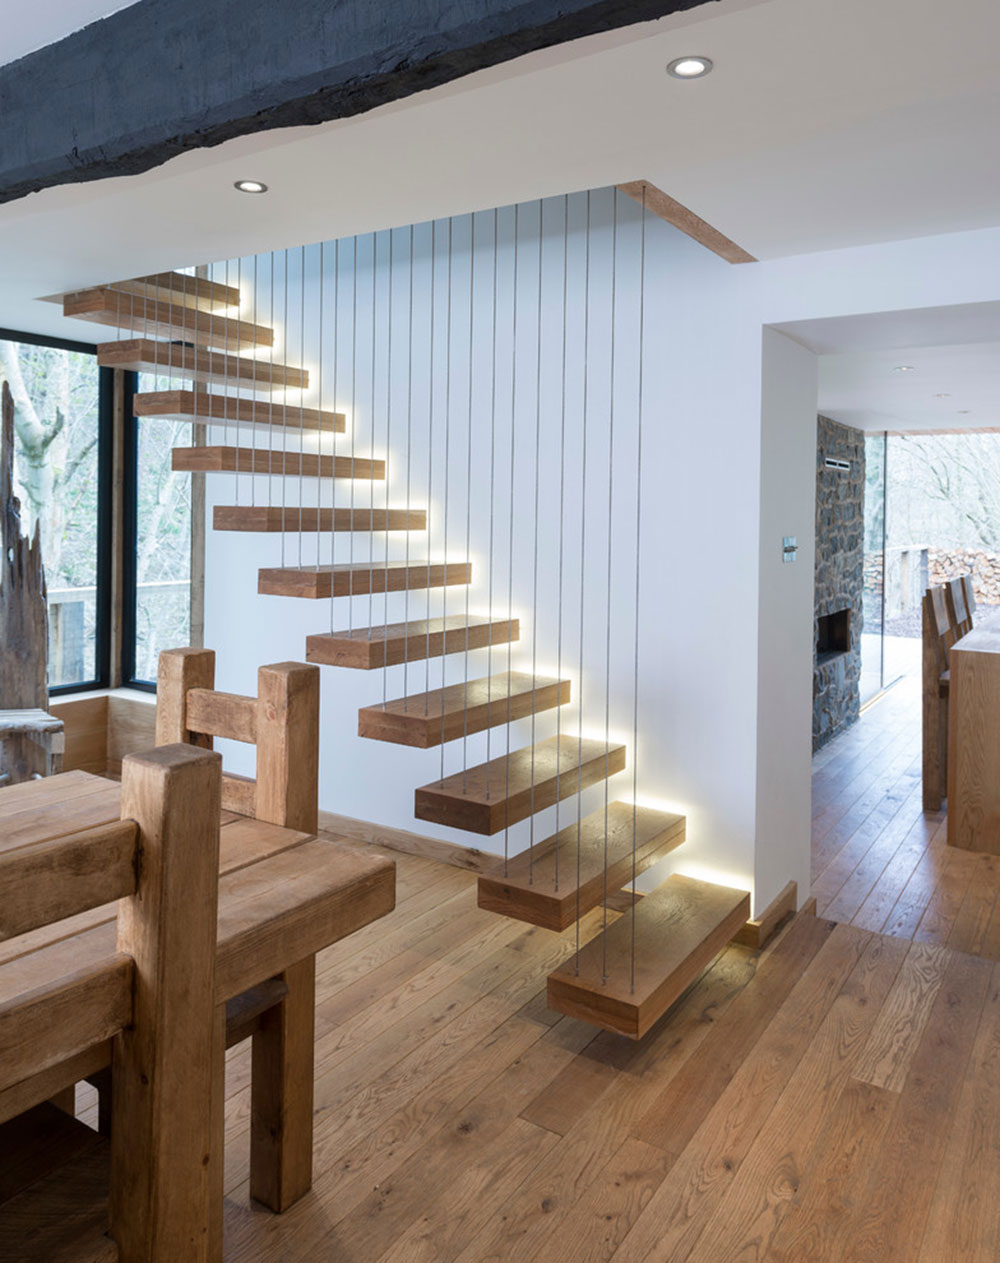 Modern And Exquisite Floating Staircase6 Modern And Exquisite Floating  Staircase Designs